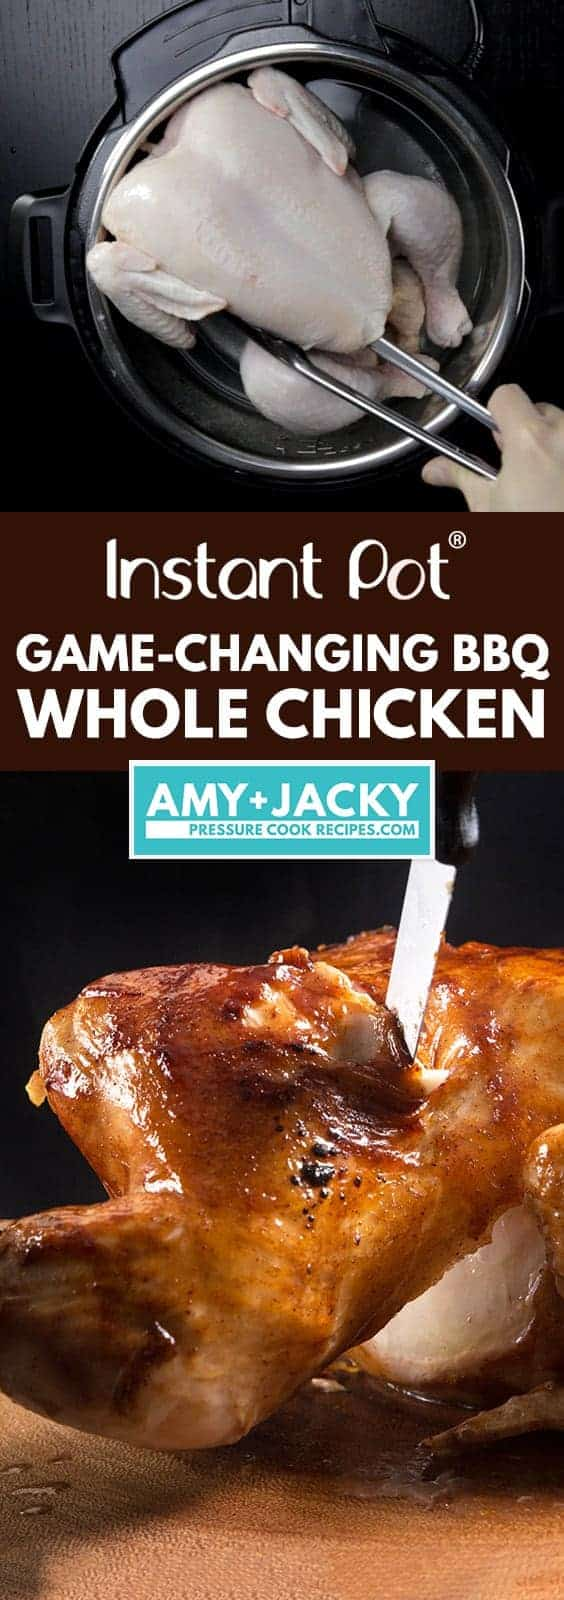 Instant Pot BBQ Whole Chicken Recipe (Pressure Cooker Whole Chicken): Make this 4-ingredient Game -Changing Instant Pot Whole Chicken in 3 Easy Steps! Tender, juicy chicken glazed with caramelized BBQ sauce. Super easy weeknight meal. #instantpot #instantpotrecipes #pressurecooker #pressurecookerrecipes #chicken #chickenrecipes #wholechicken